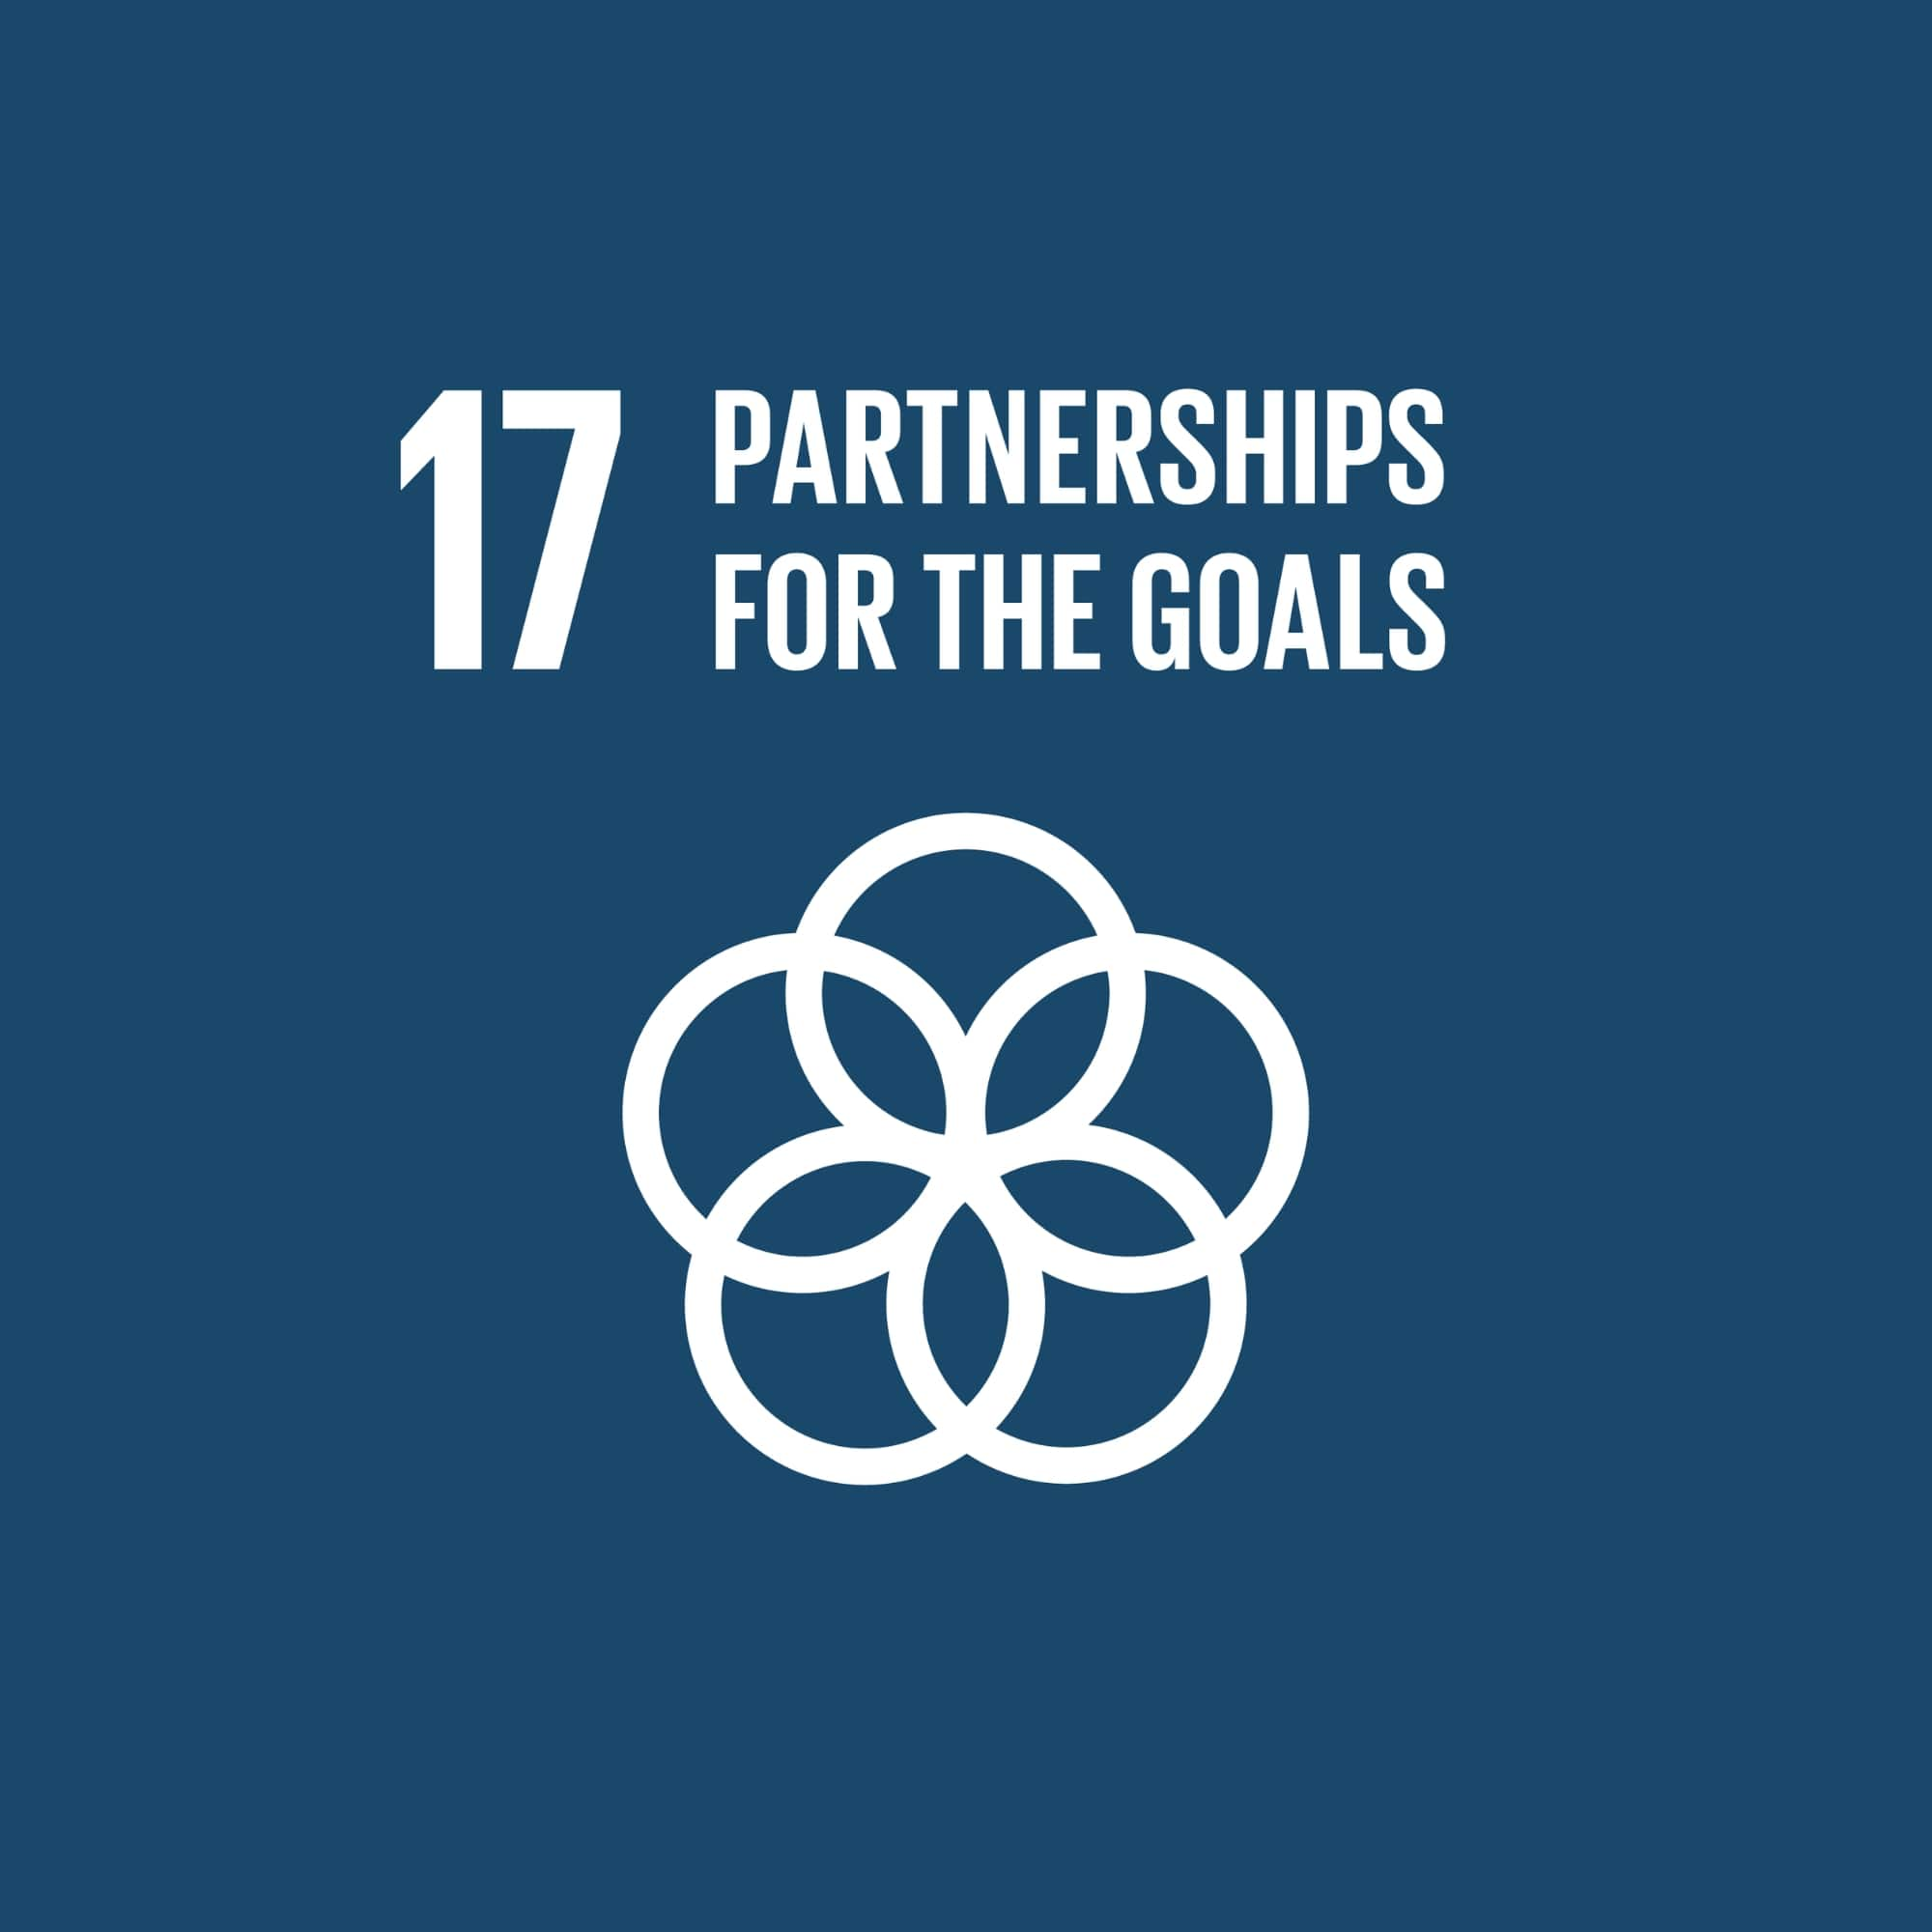 GLOBAL SUSTAINABILITY : PARTNERSHIP FOR THE GOALS